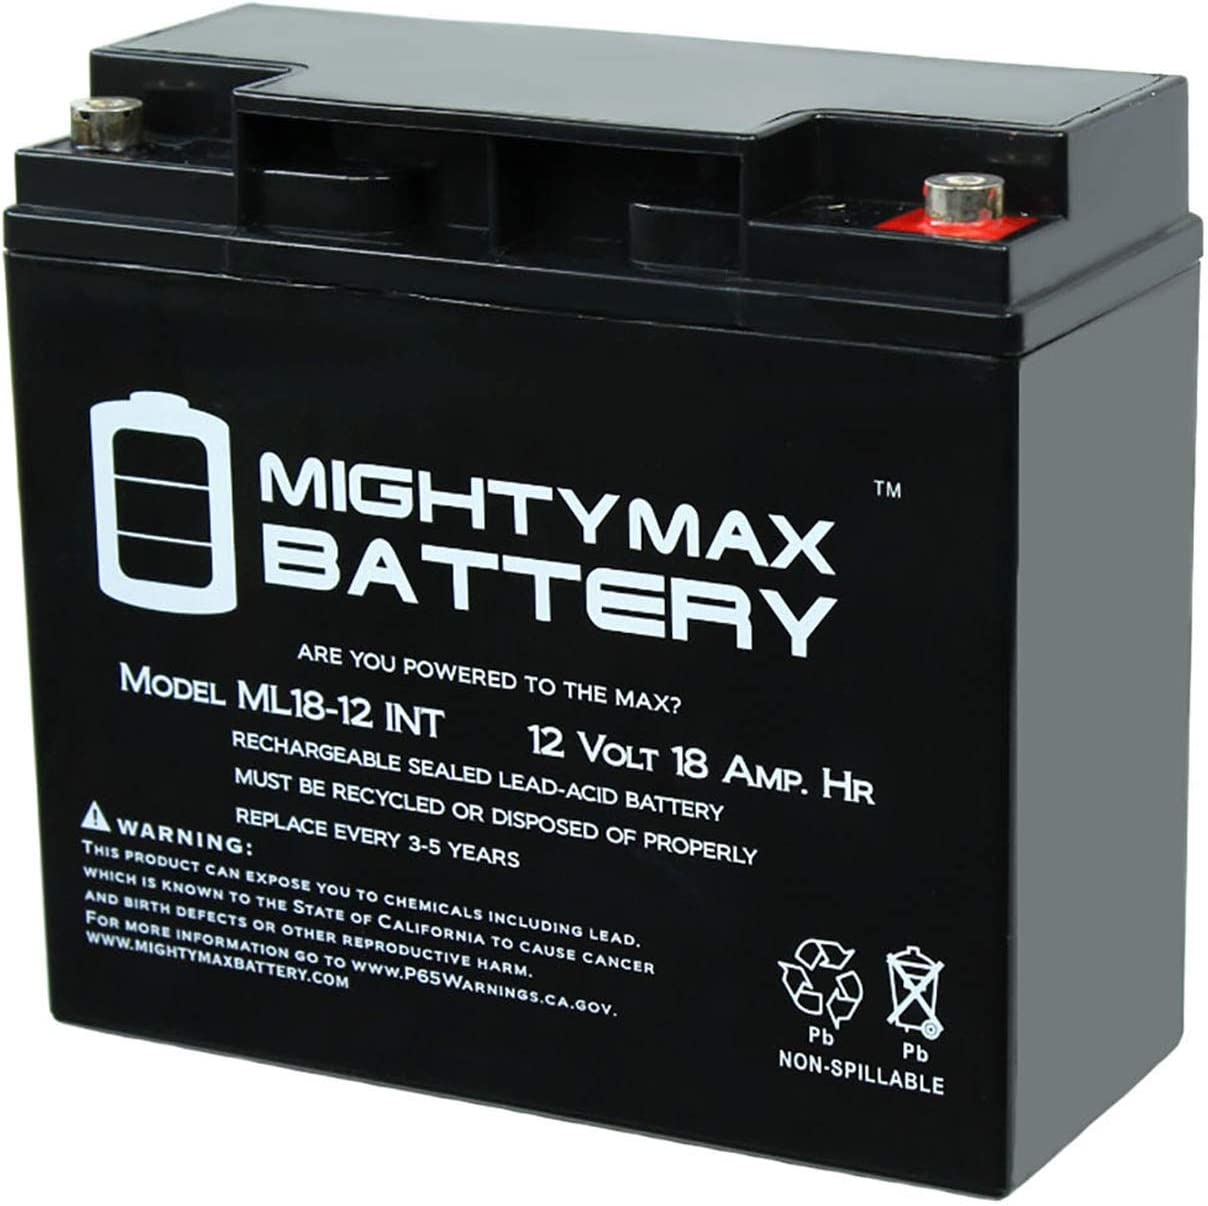 Mighty Max Battery 12V 18AH SLA Internal Thread Replacement for Vision CP12180 Brand Product